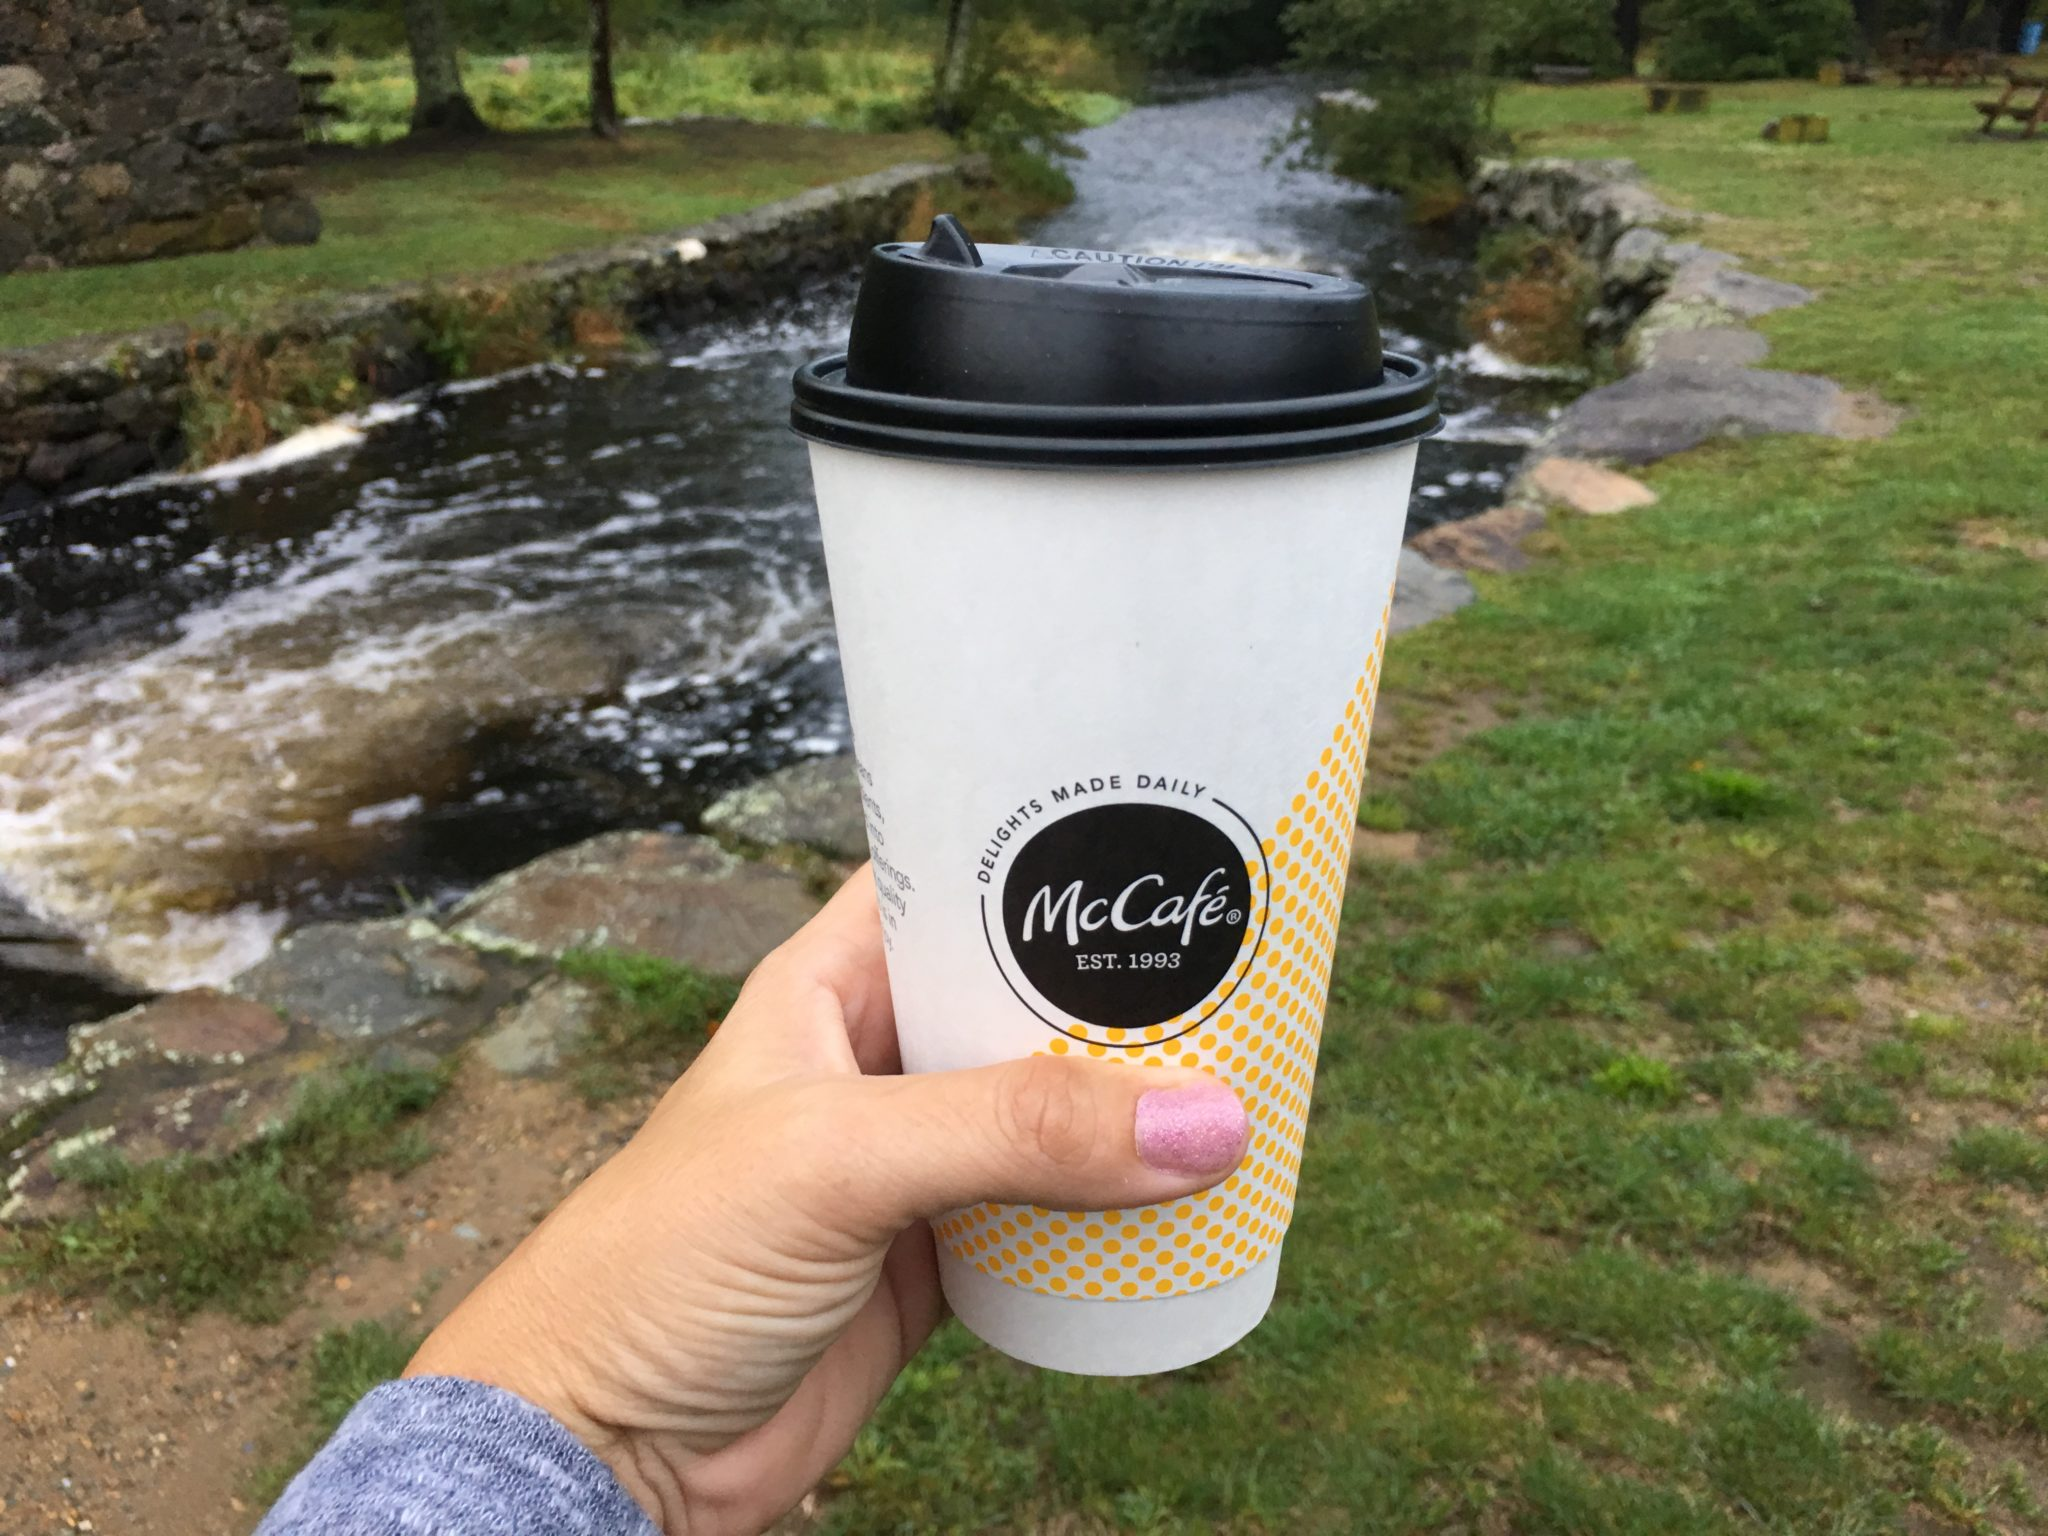 Celebrate the Relaunch of McDonald's McCafé Beverages With Delicious Lattes and Mochas! The quality is outstanding and you can't beat the price!